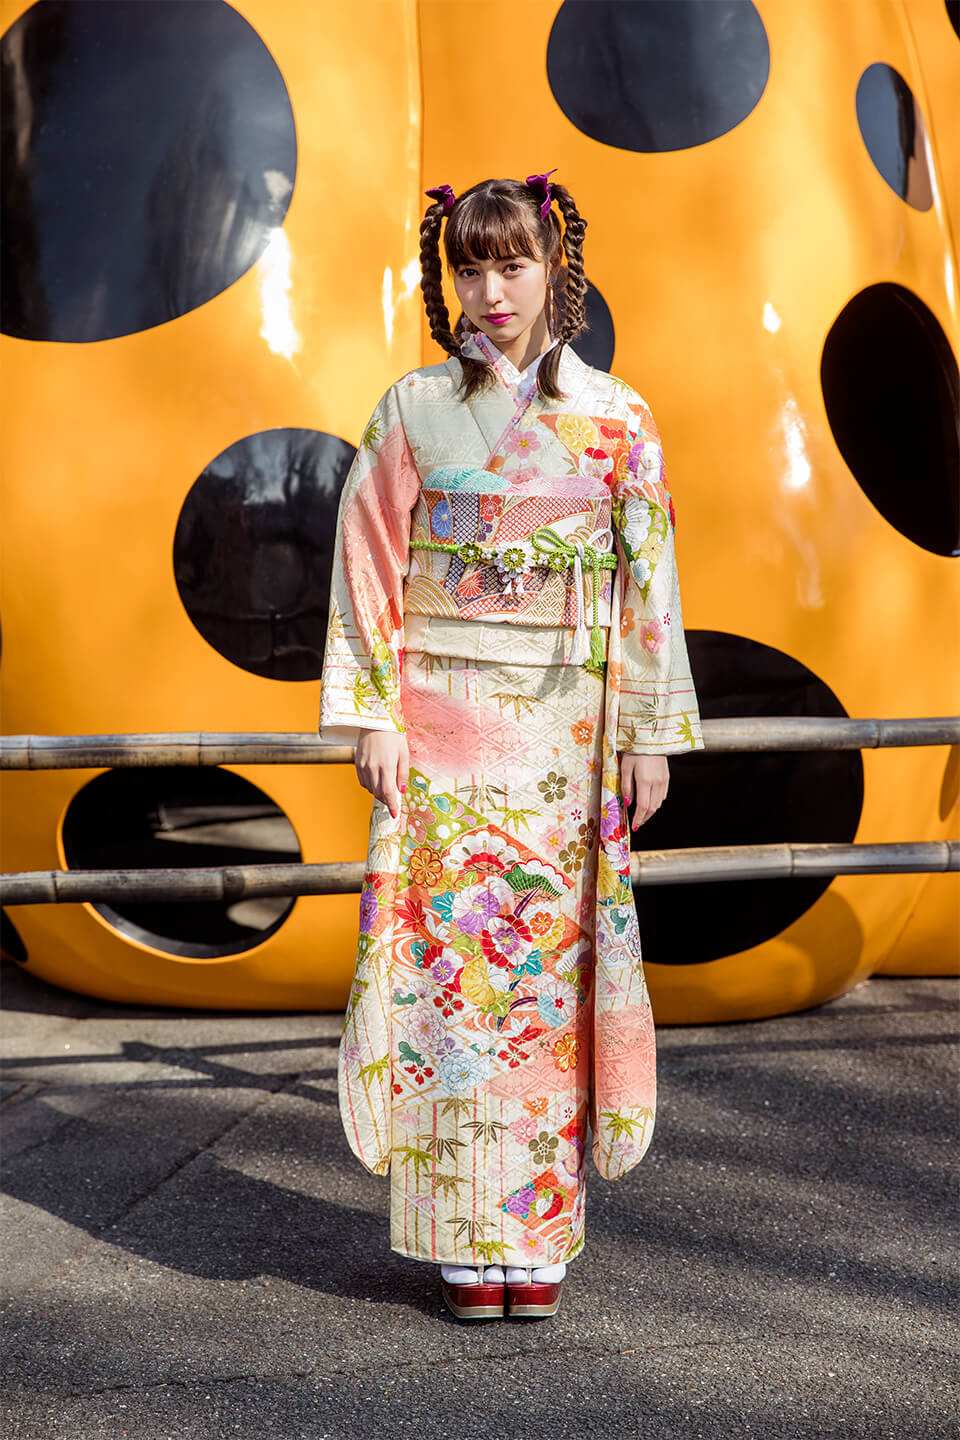 KYOTO SWEET COLLECTION A-3202